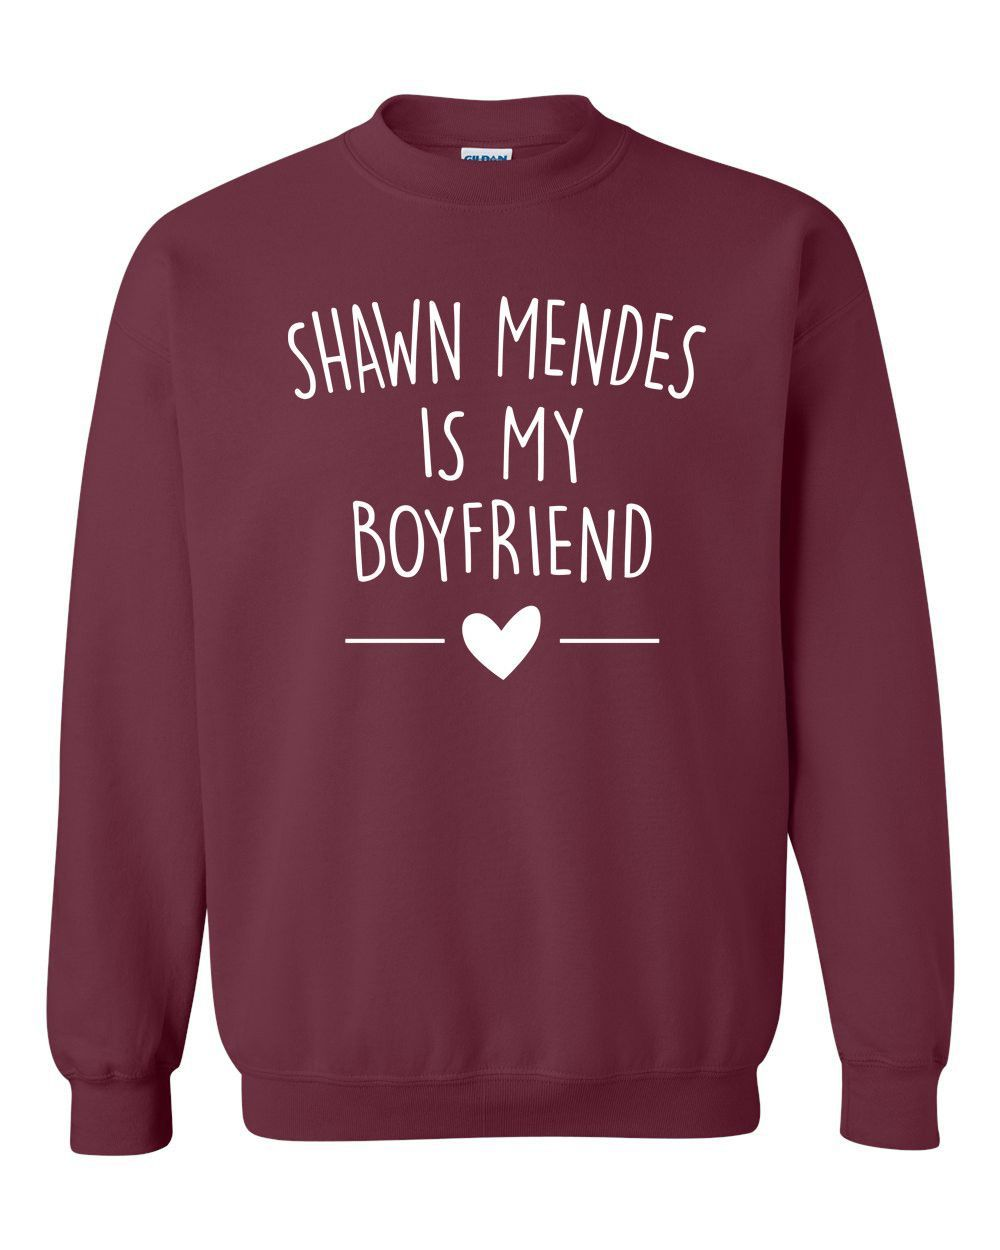 95d377a1e Shawn Mendes Sweatshirt. Shawn Mendes Shirt. Shawn Mendes Jumper. ($26) ❤  liked on Polyvore featuring tops, hoodies, sweatshirts, …